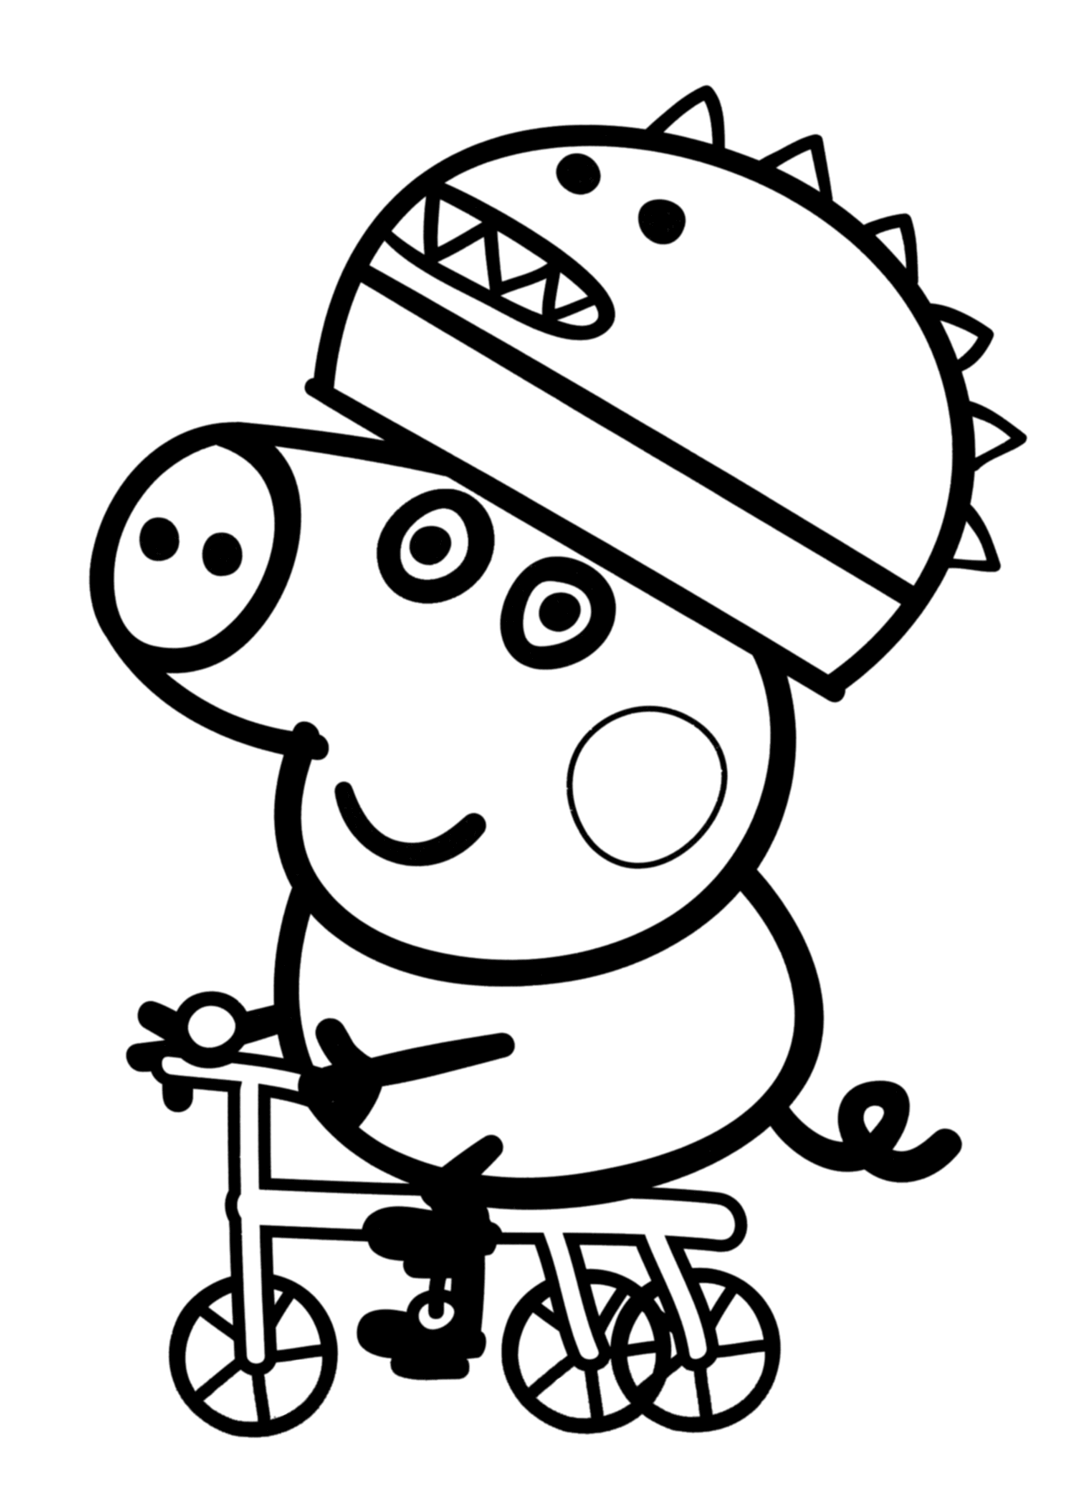 peppa pig coloring in peppa pig go swimming coloring page free printable pig peppa in coloring